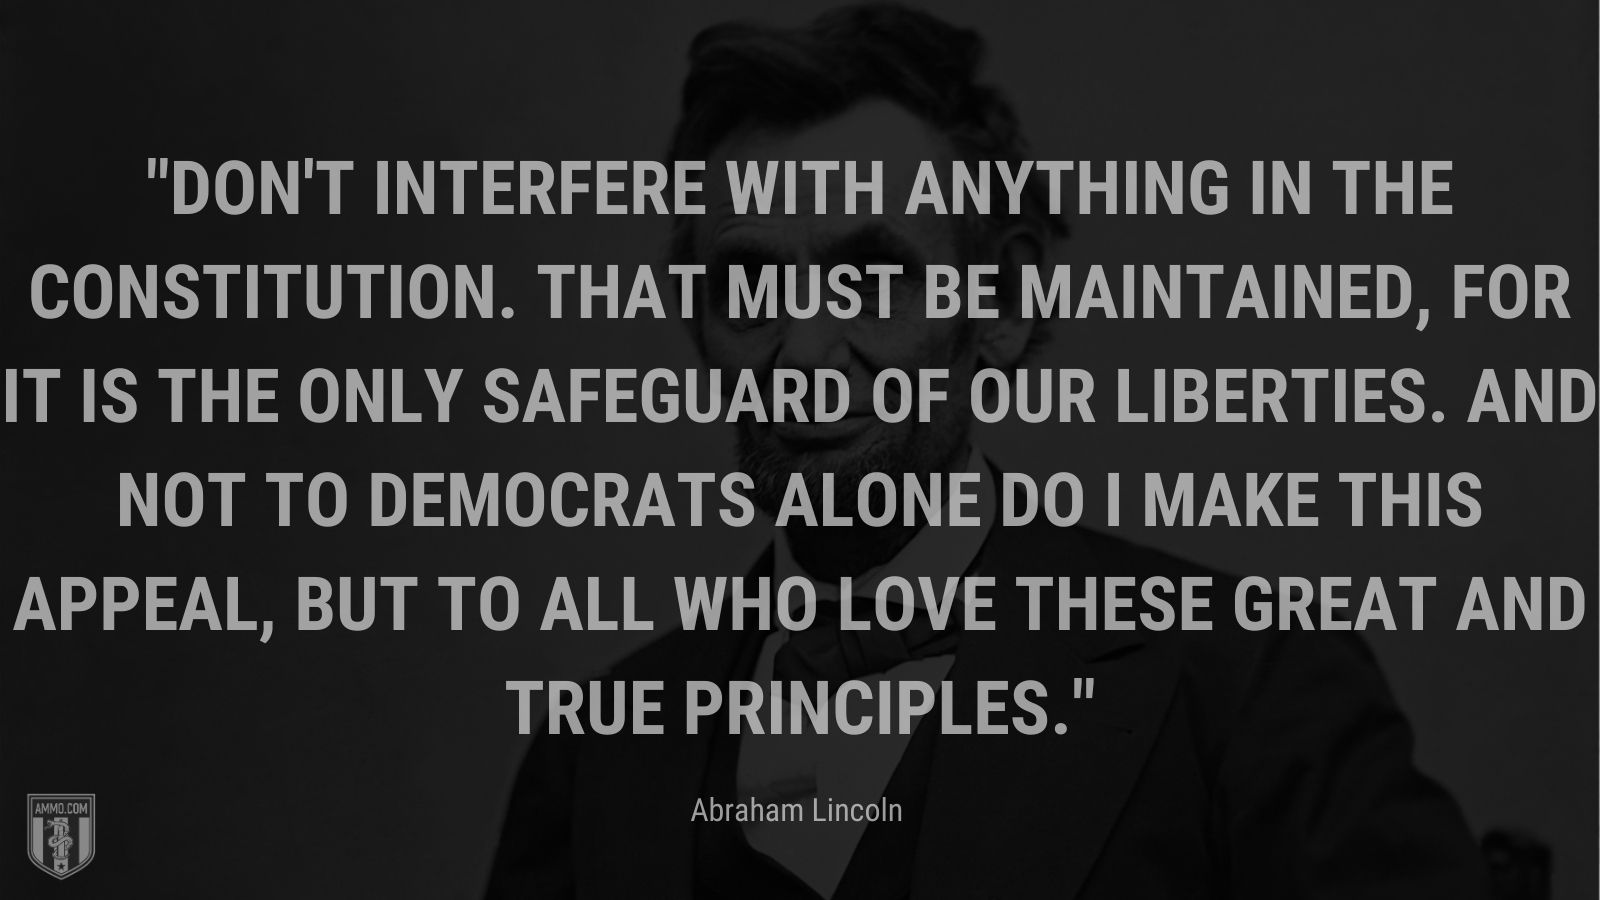 """""""Don't interfere with anything in the Constitution. That must be maintained, for it is the only safeguard of our liberties. And not to Democrats alone do I make this appeal, but to all who love these great and true principles. - Abraham Lincoln"""